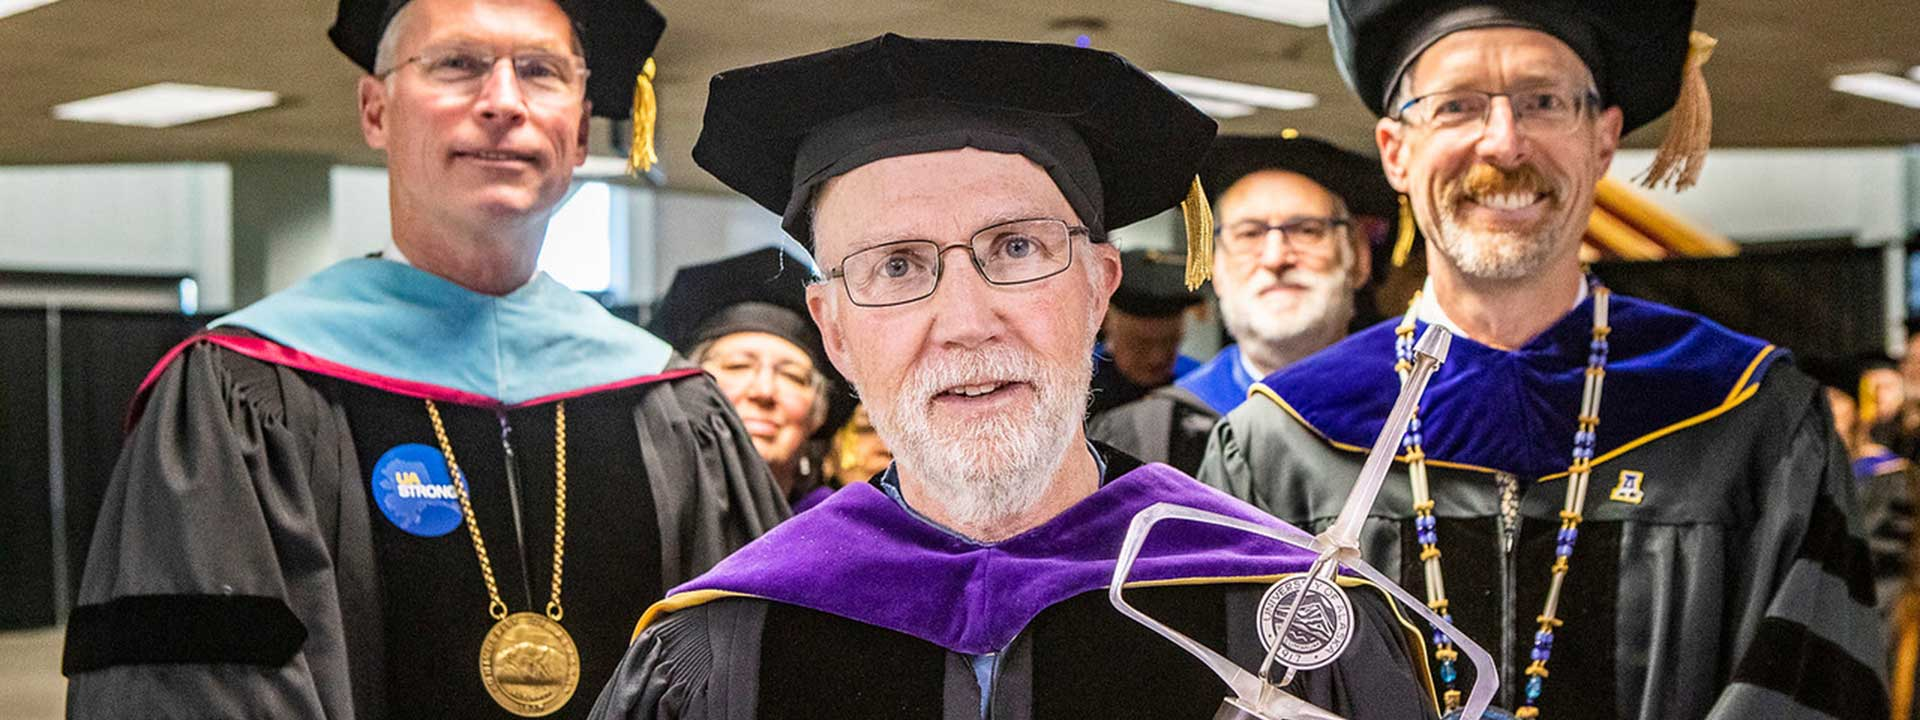 The faculty grand marshall carries the university mace at the start of the 2019 commencement ceremony at the Carlson Center